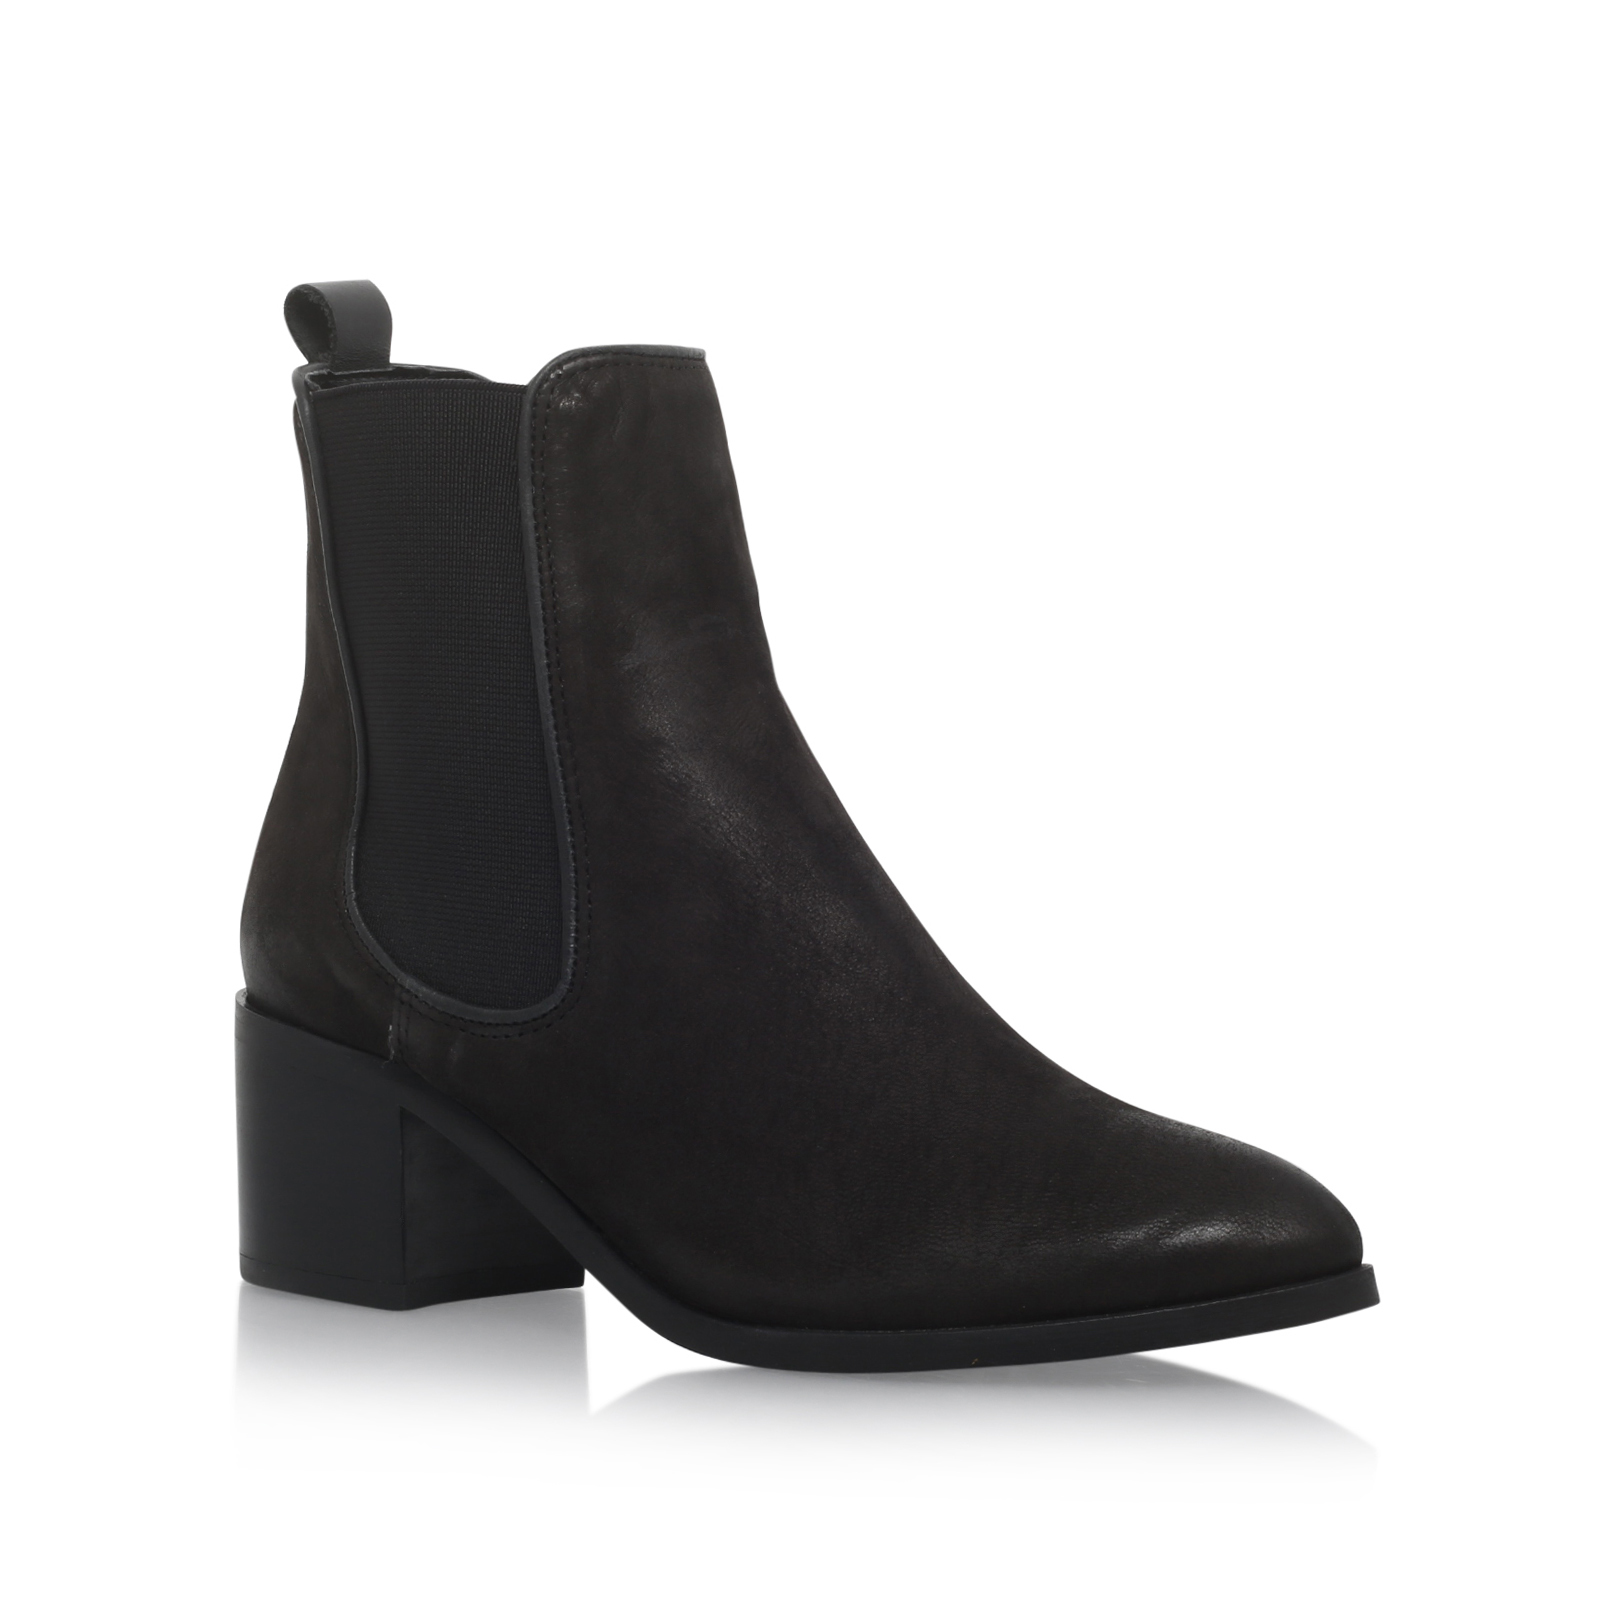 Ladies Heeled Boots () oasis - red Mid Stiletto Heel Ankle Boot £ dune london QUICK VIEW oasis - black Mid Stiletto Heel Ankle Boot £ dune london QUICK VIEW oasis - white Mid Stiletto Heel Ankle Boot £ dune london QUICK VIEW oasis - black Mid Stiletto Heel Ankle Boot £ dune london QUICK VIEW.